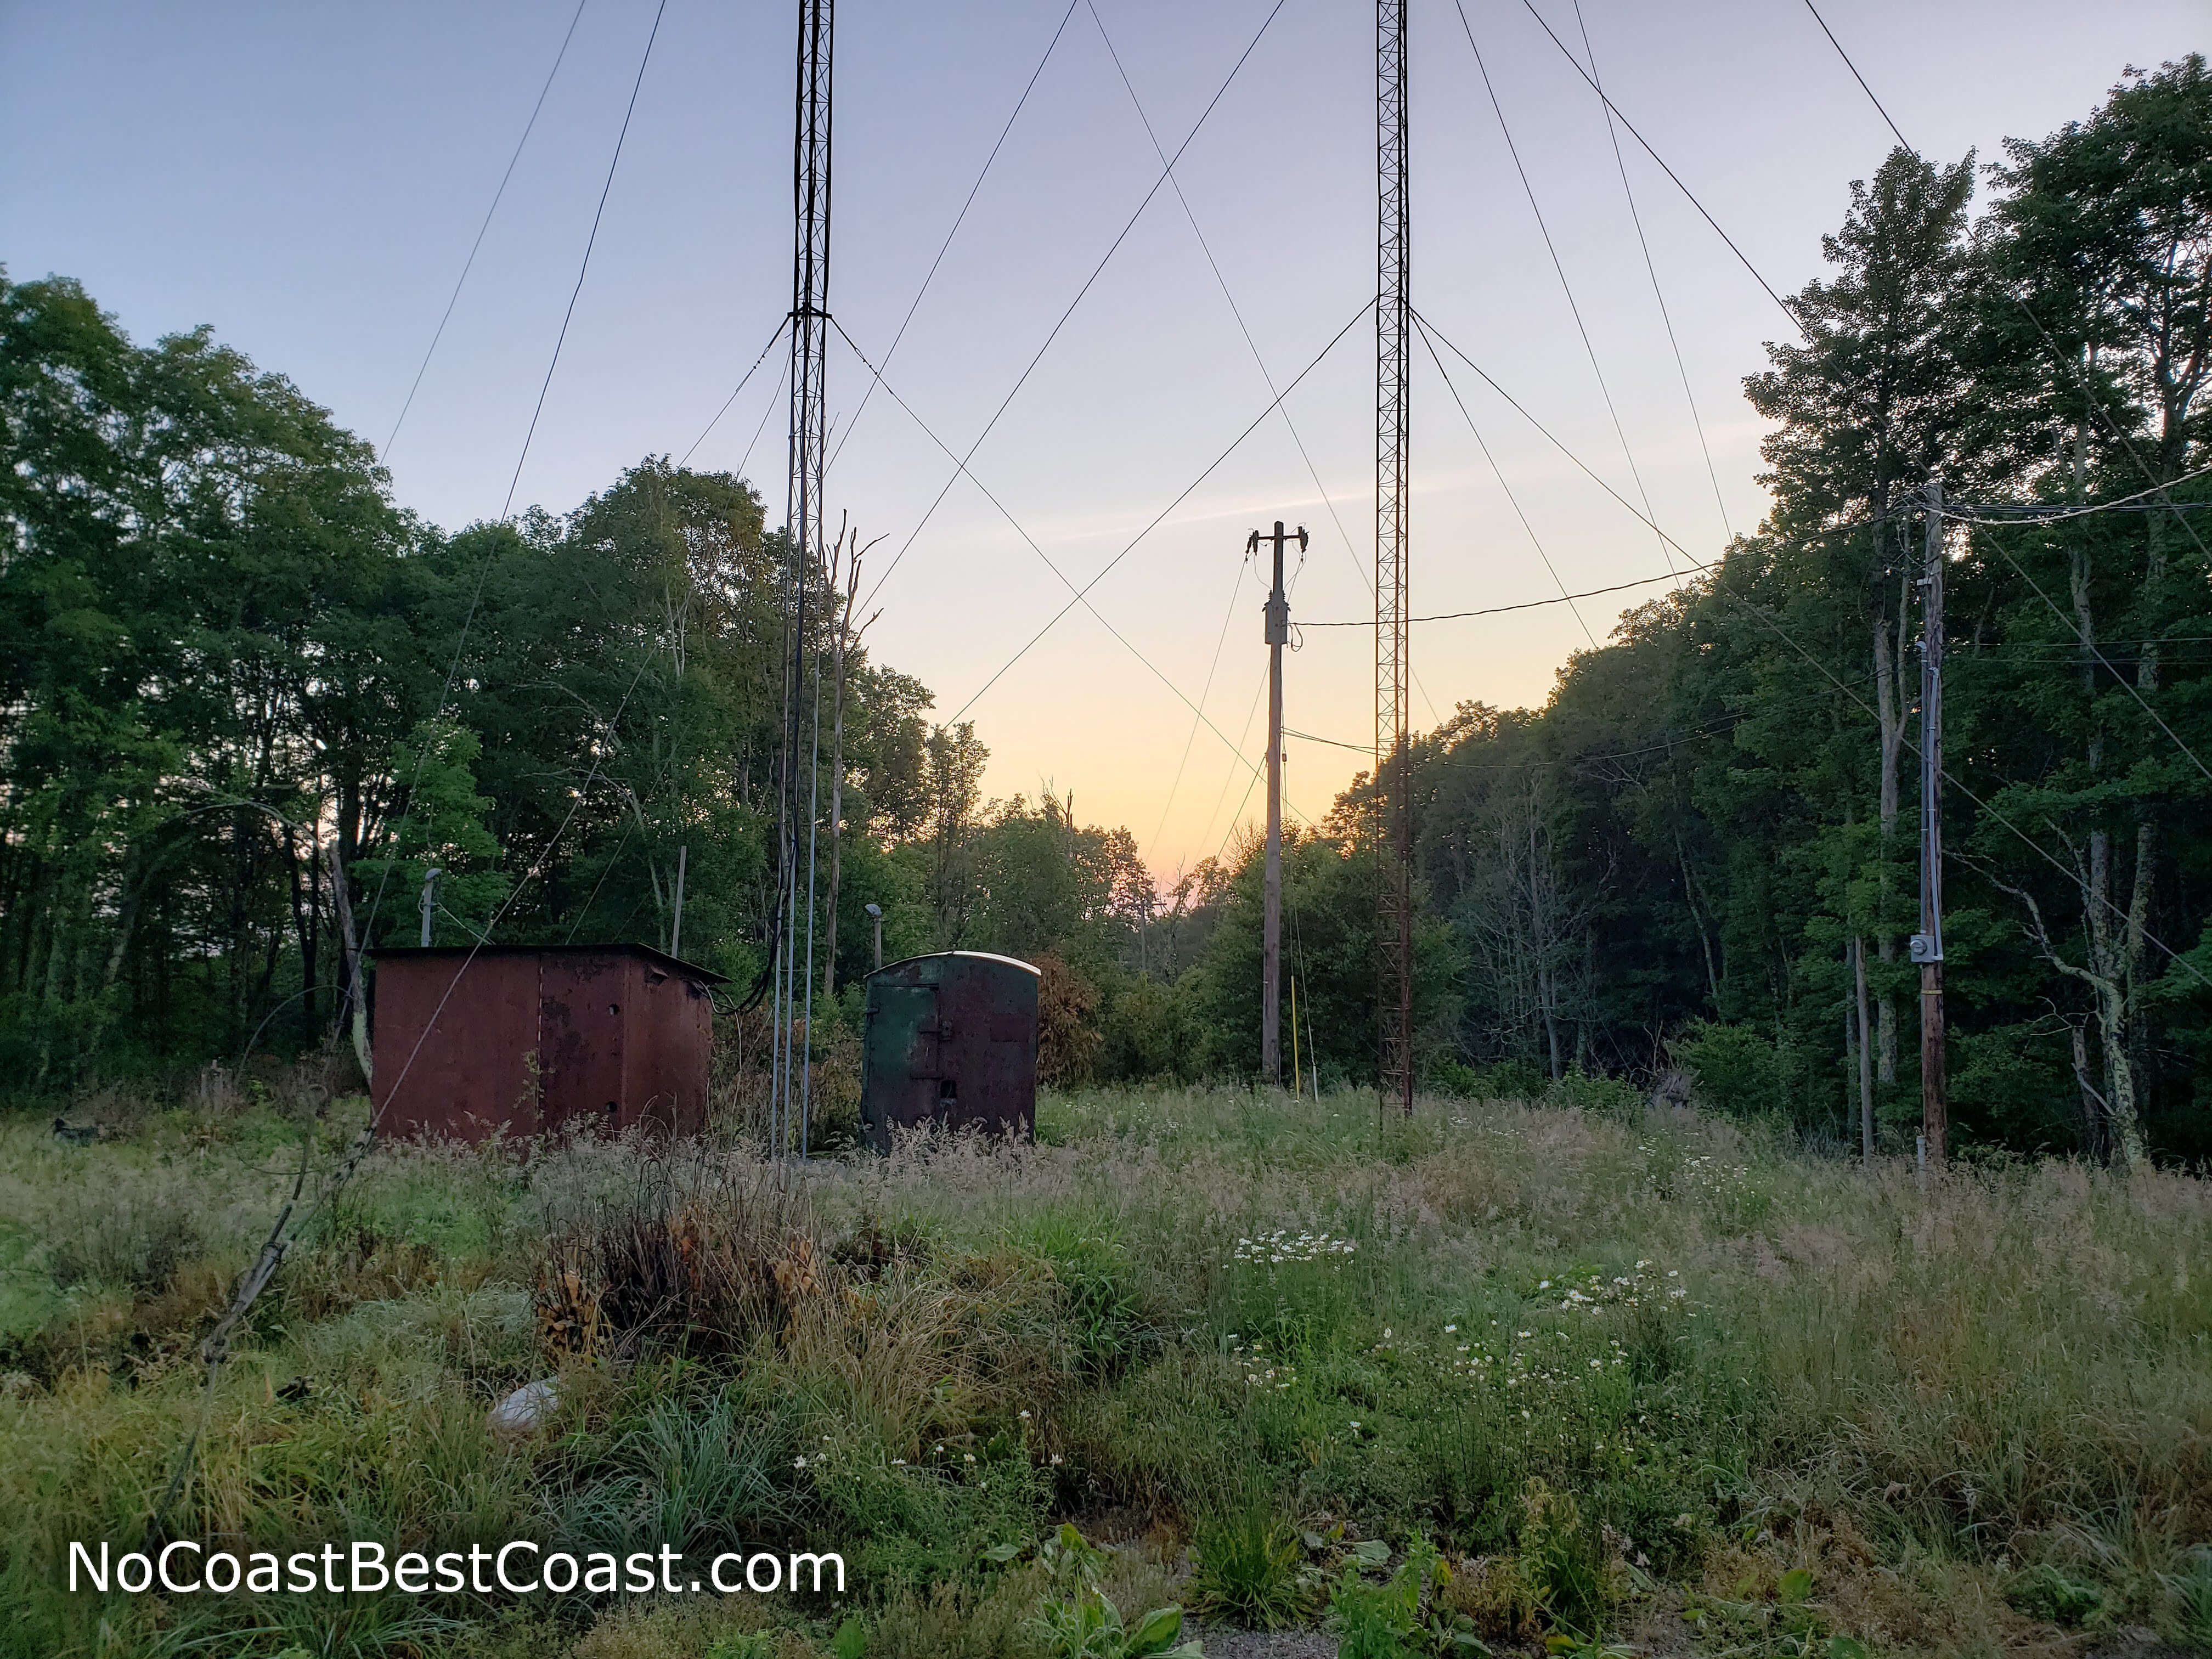 Some of the communications equipment on Black Mountain